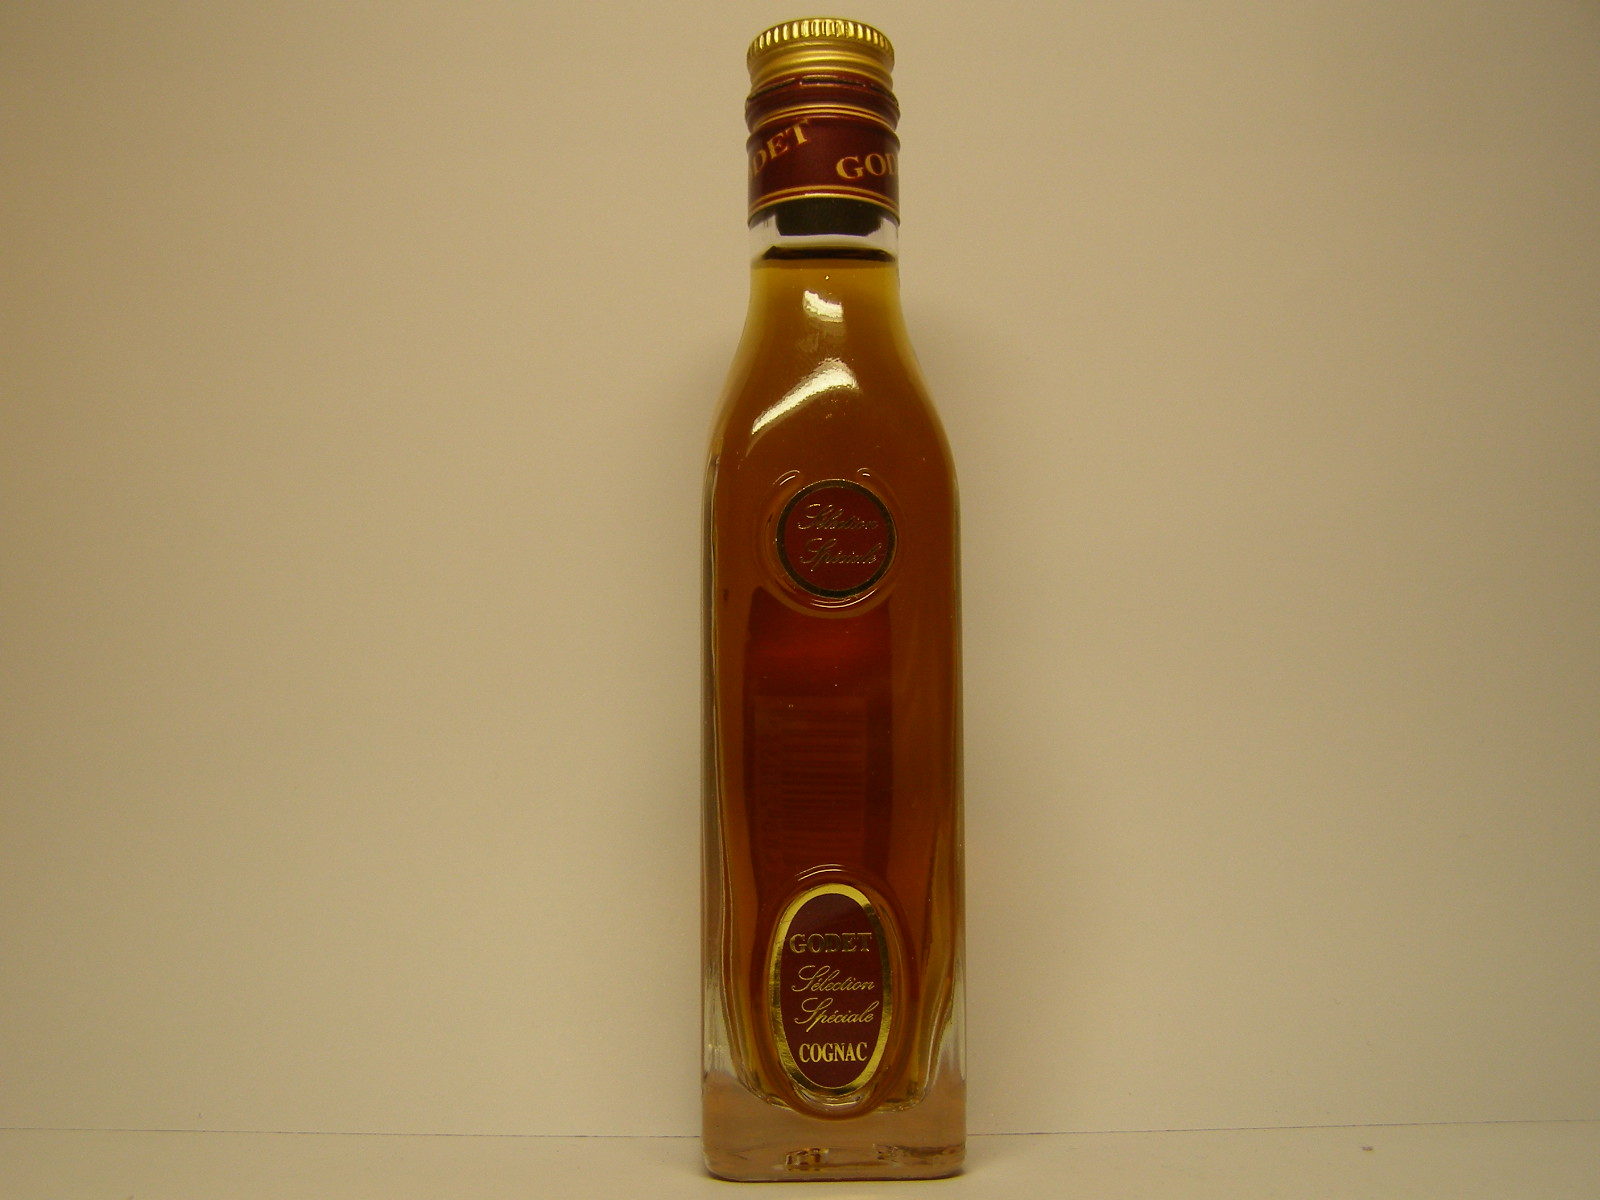 Selection Speciale Cognac